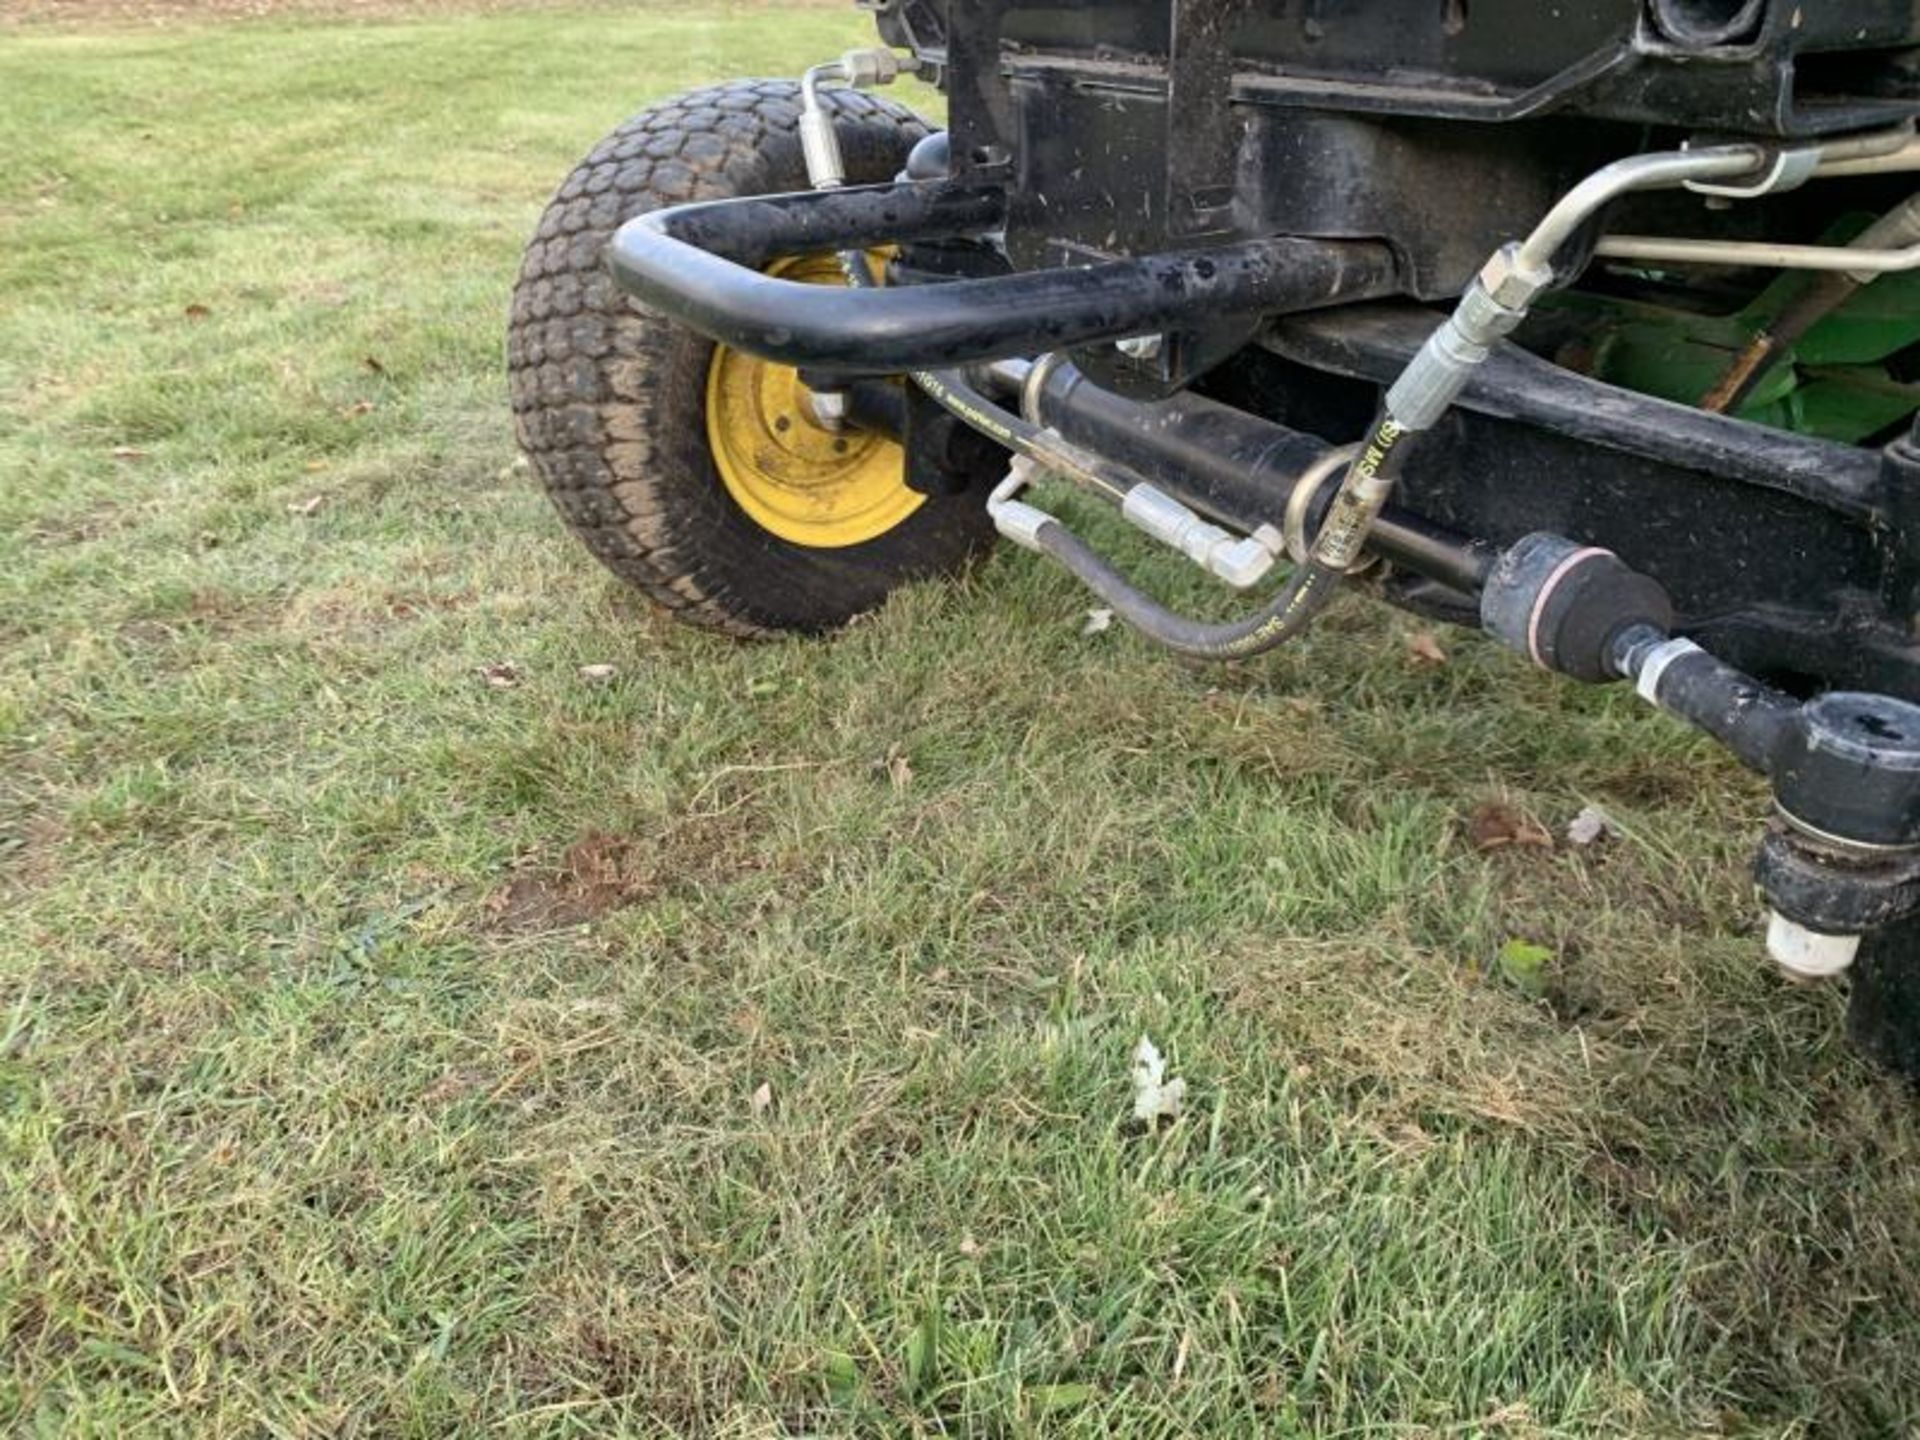 2016 John Deere 7500A Precision Cut 2WD T4, 2,355 Hours, SN: 1TC750AVLGR030141 - Image 4 of 17